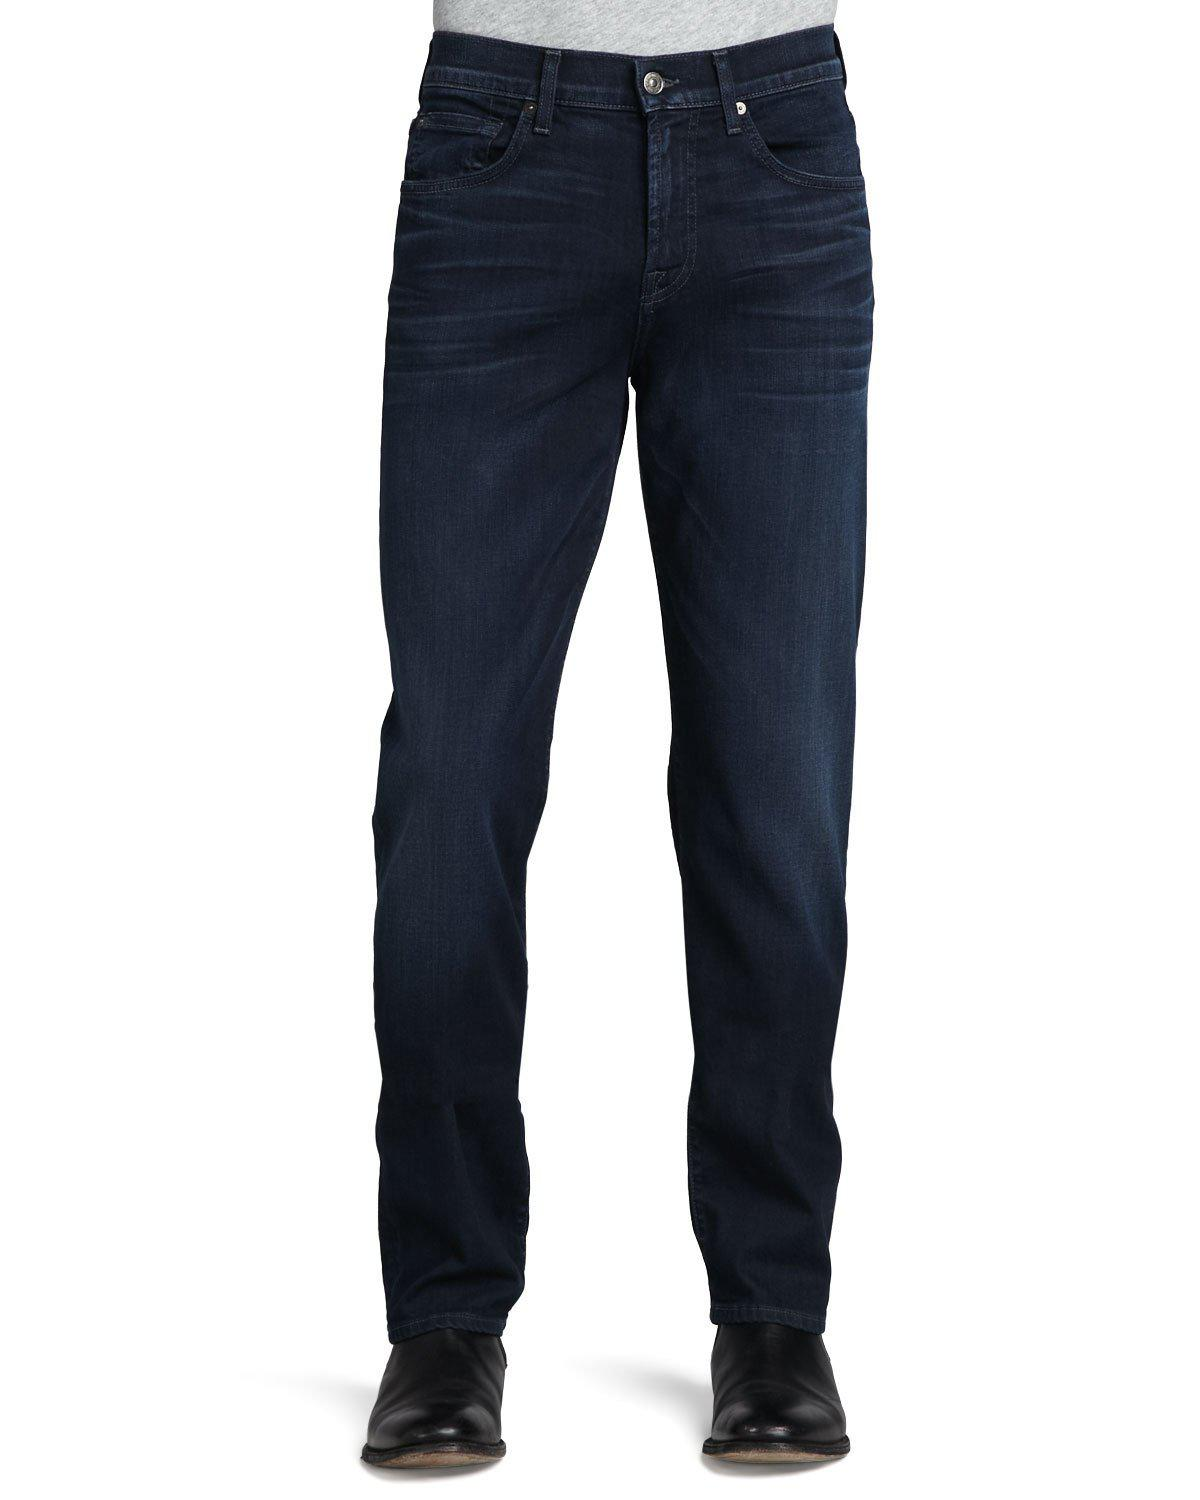 7 For All Mankind Luxe Performance Carsen Blue Ice Jeans